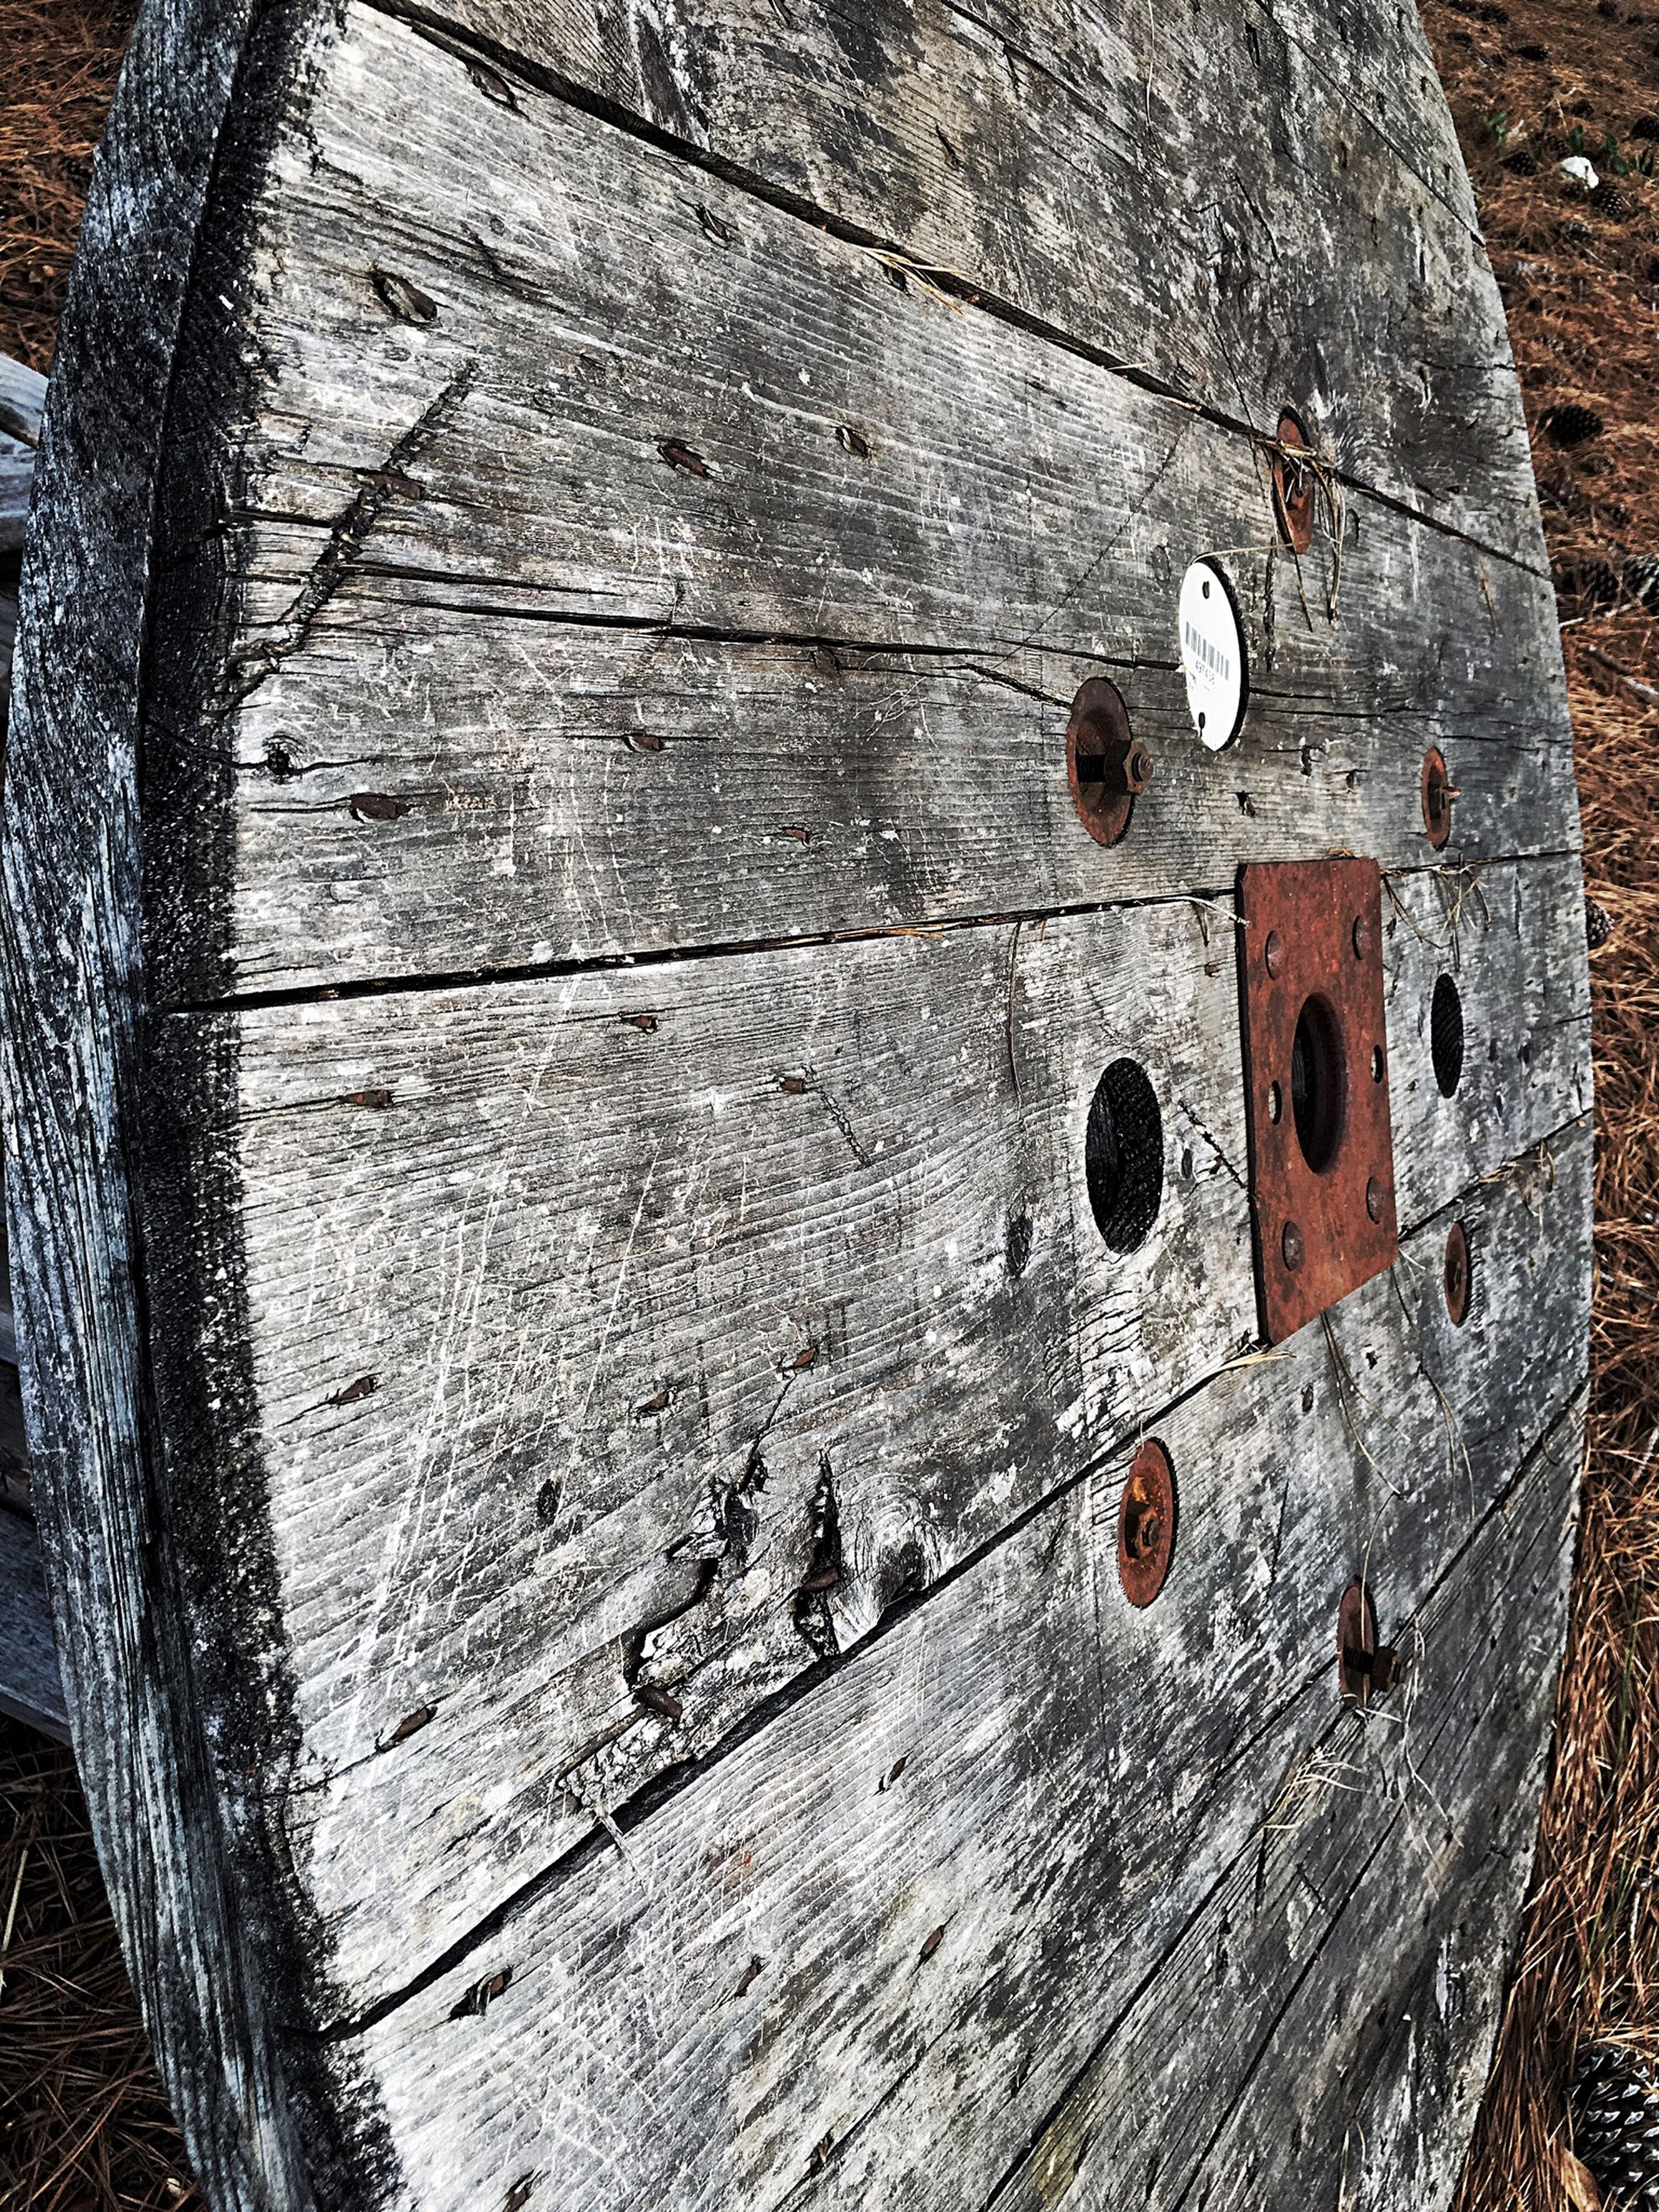 wood - material, abandoned, damaged, close-up, wooden, old, obsolete, textured, high angle view, wood, weathered, run-down, deterioration, rusty, plank, day, outdoors, broken, no people, hole